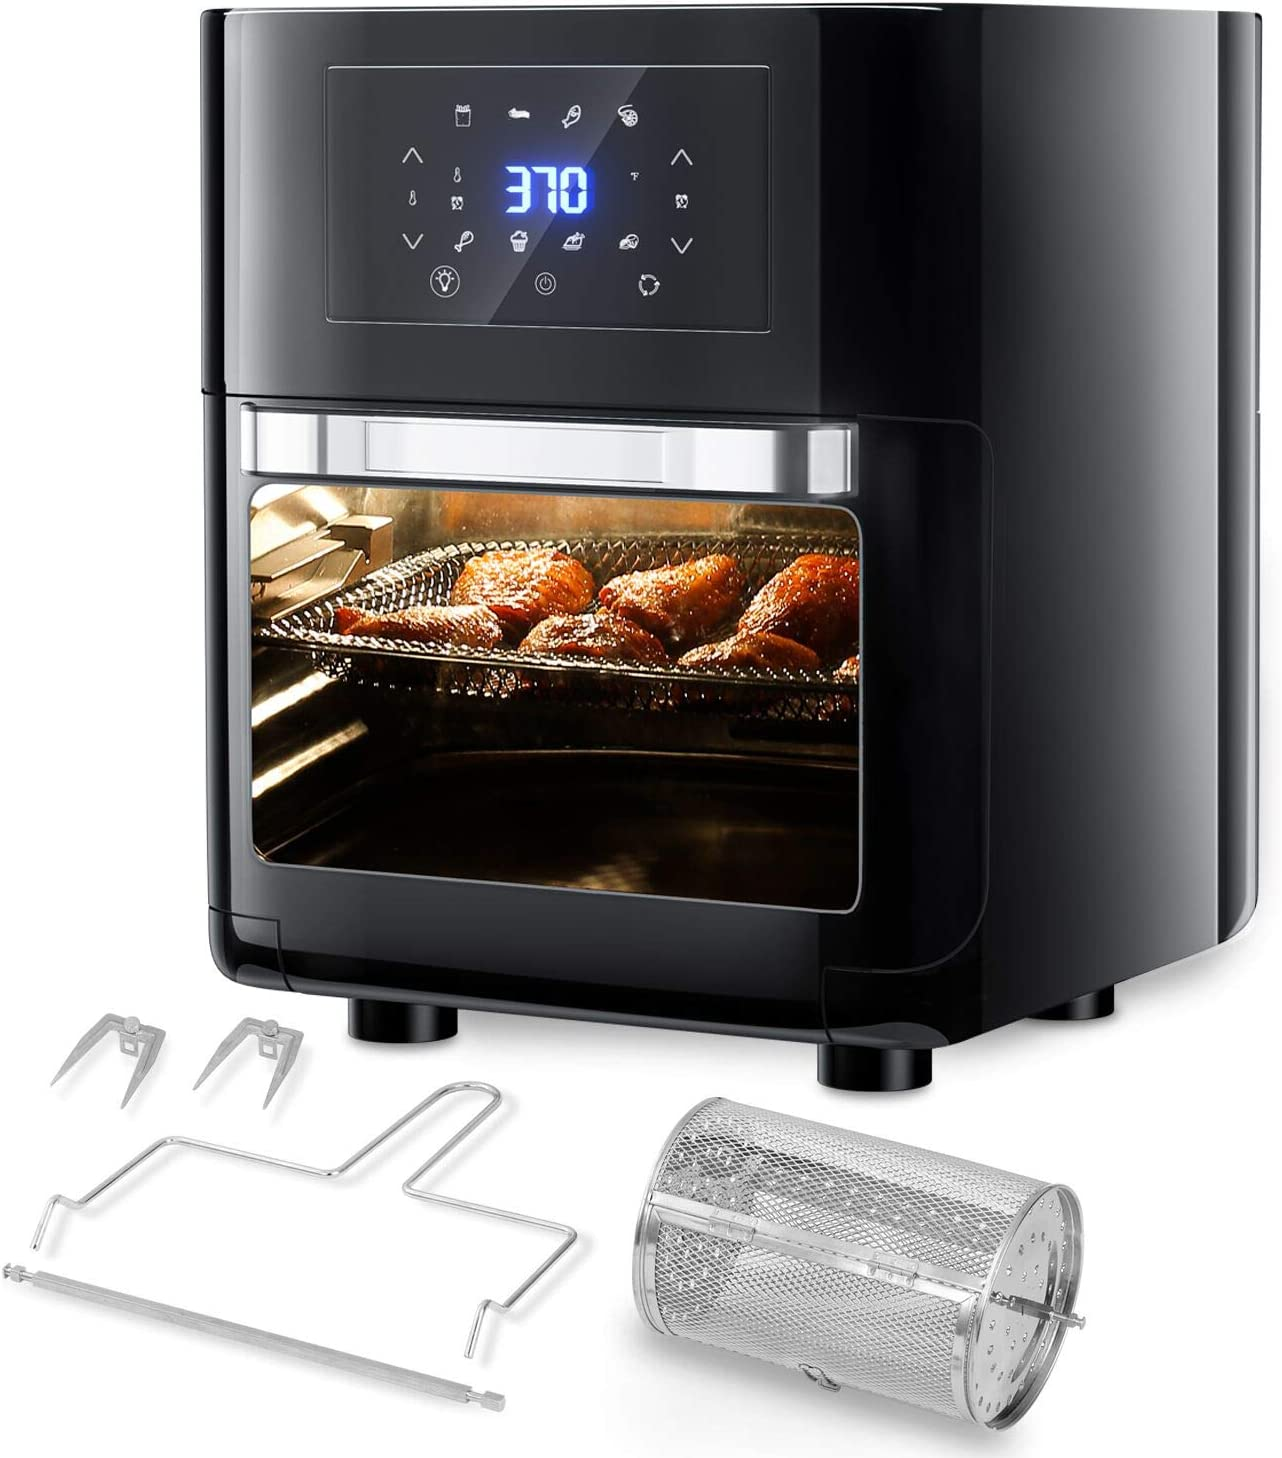 CateVoice 1700W Air Fryer Toaster Oven, 10.5 QT Convection Roaster, 8-in-1 Multifunctional Cooker, LED Digital Touchscreen | Rotisserie Dehydrator | Auto Shutoff | 5 Accessories and Recipe Includes | XL Family Size